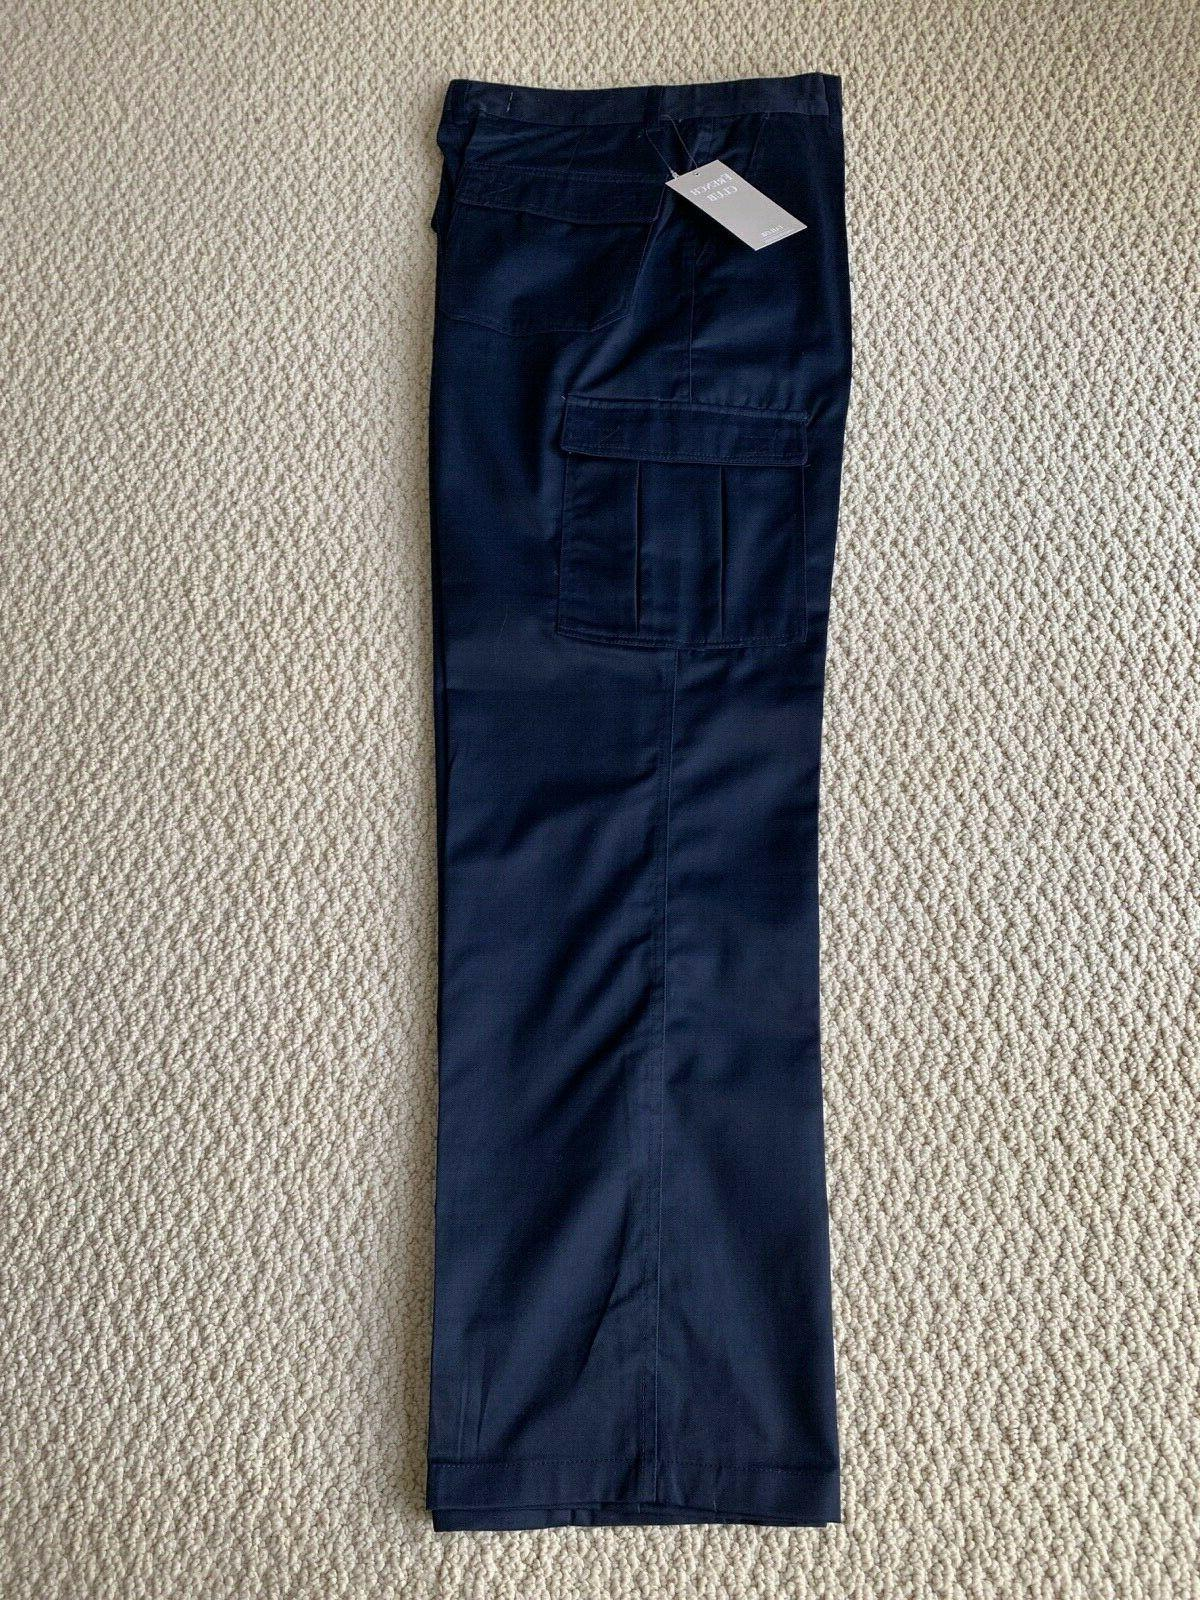 NWT French Classic Flap Pocket Pants SIZE